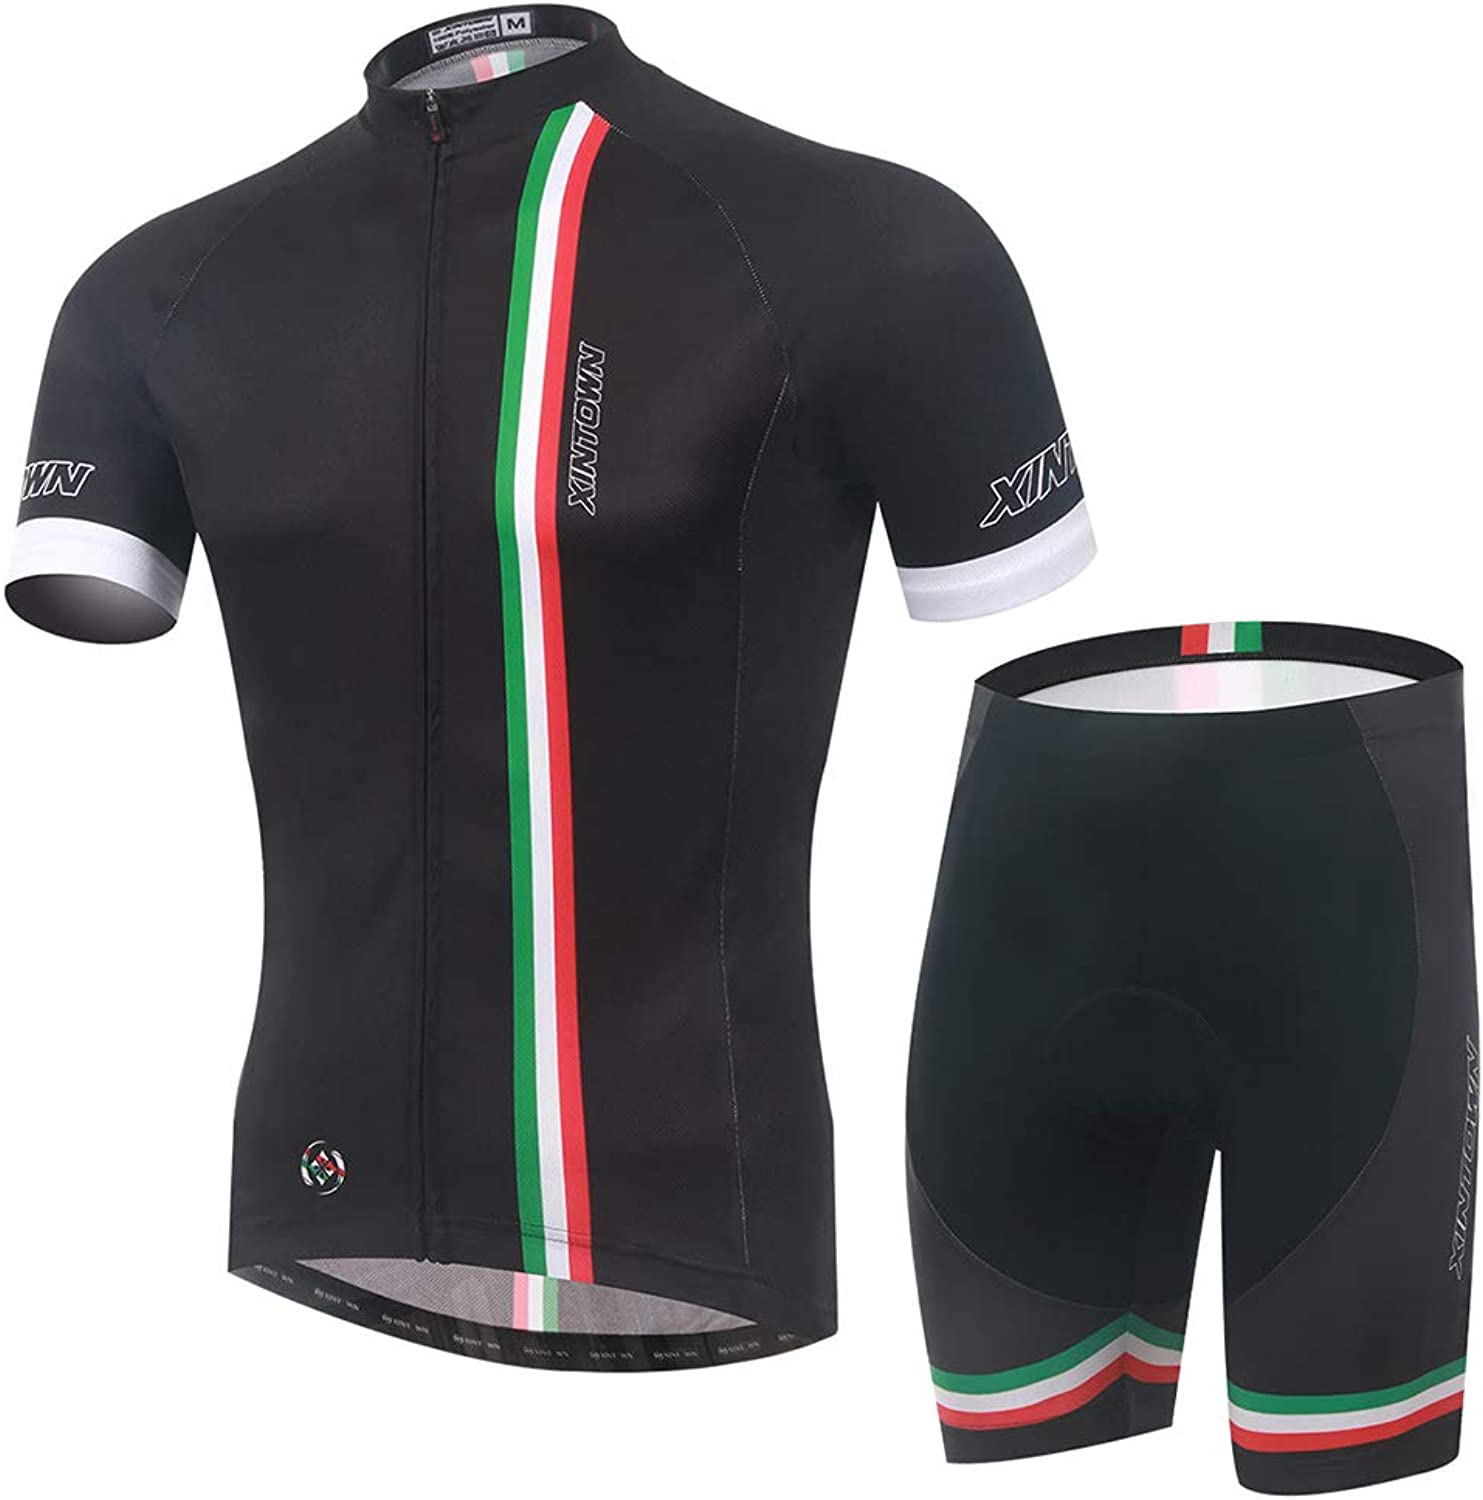 Bike Jersey Mens Short Sleeve,Breathable Cycling Suit,Shorts Cycling Clothing,Tights Elasticity Comfortable Quick Dry Road Cycling Jersey